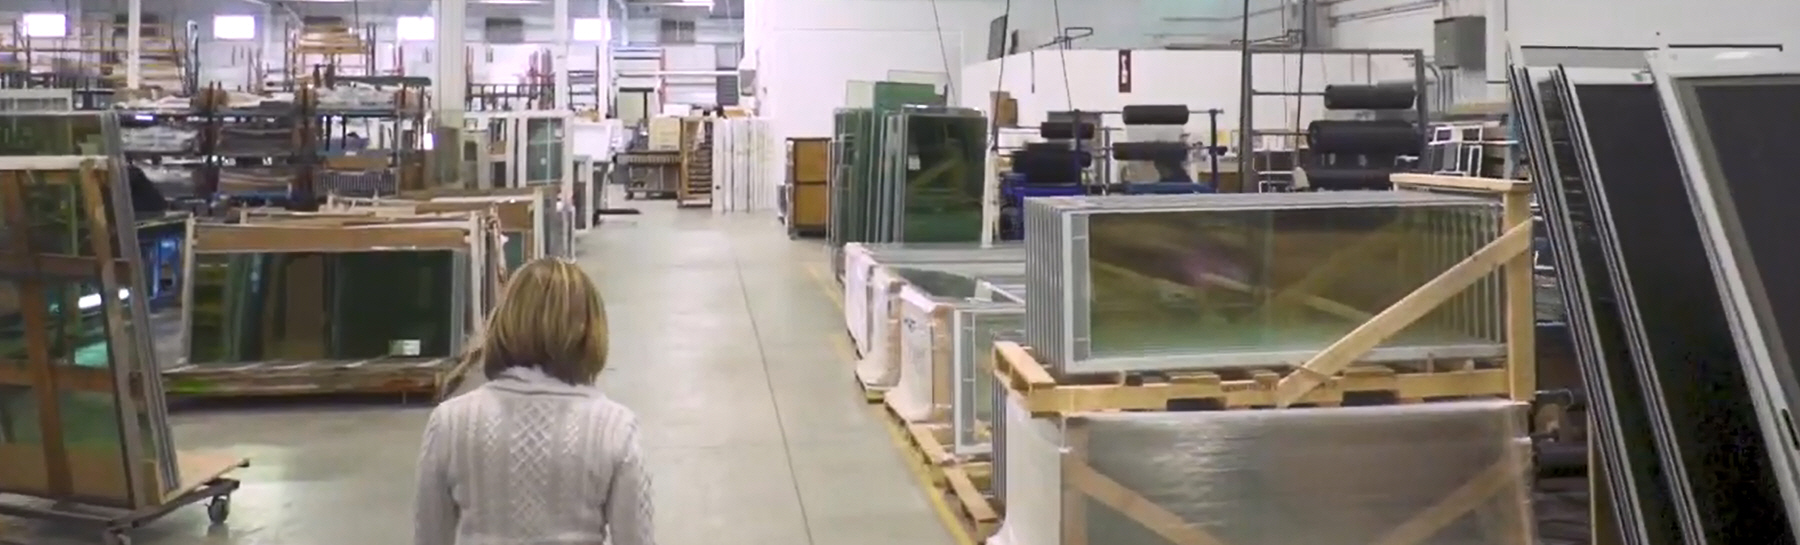 woman walking through a manufacturing plant